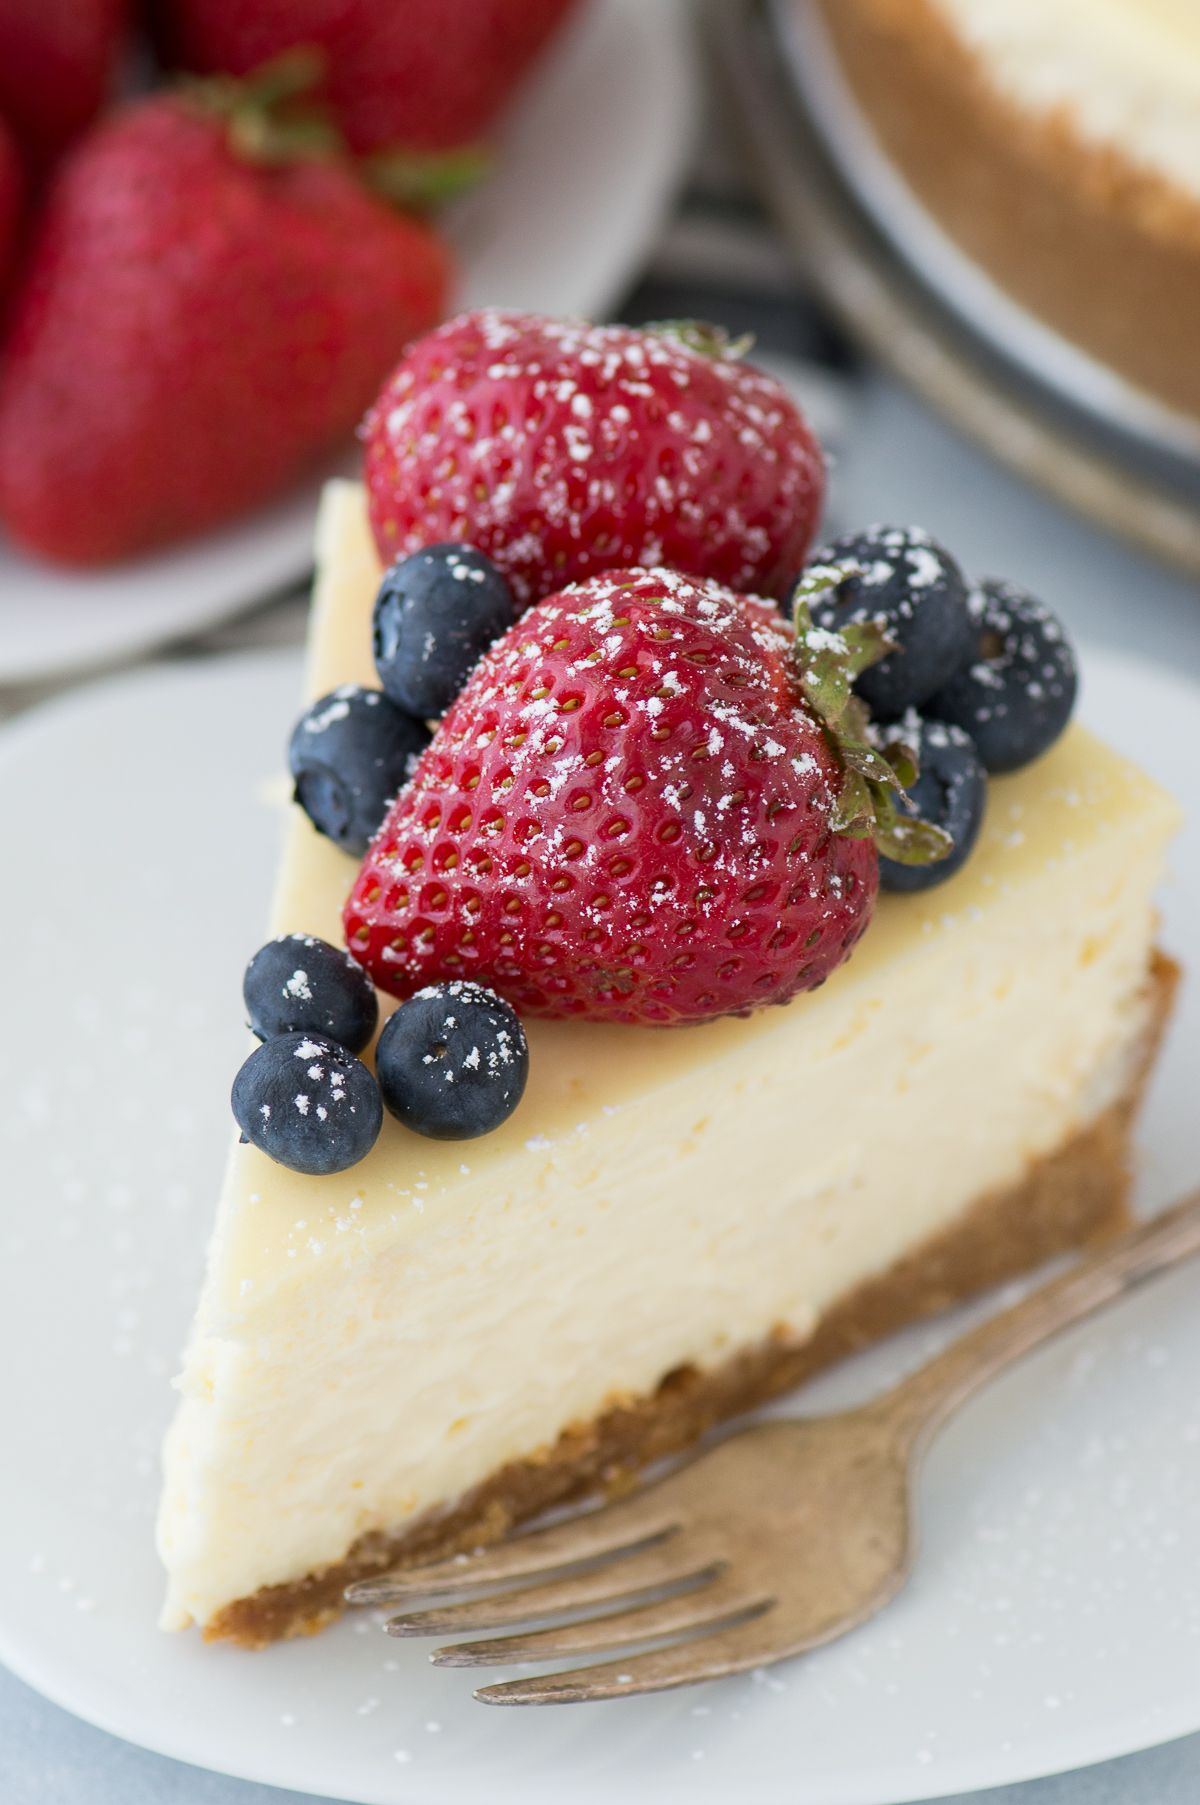 Plain Cheesecake Recipe Without Water Bath